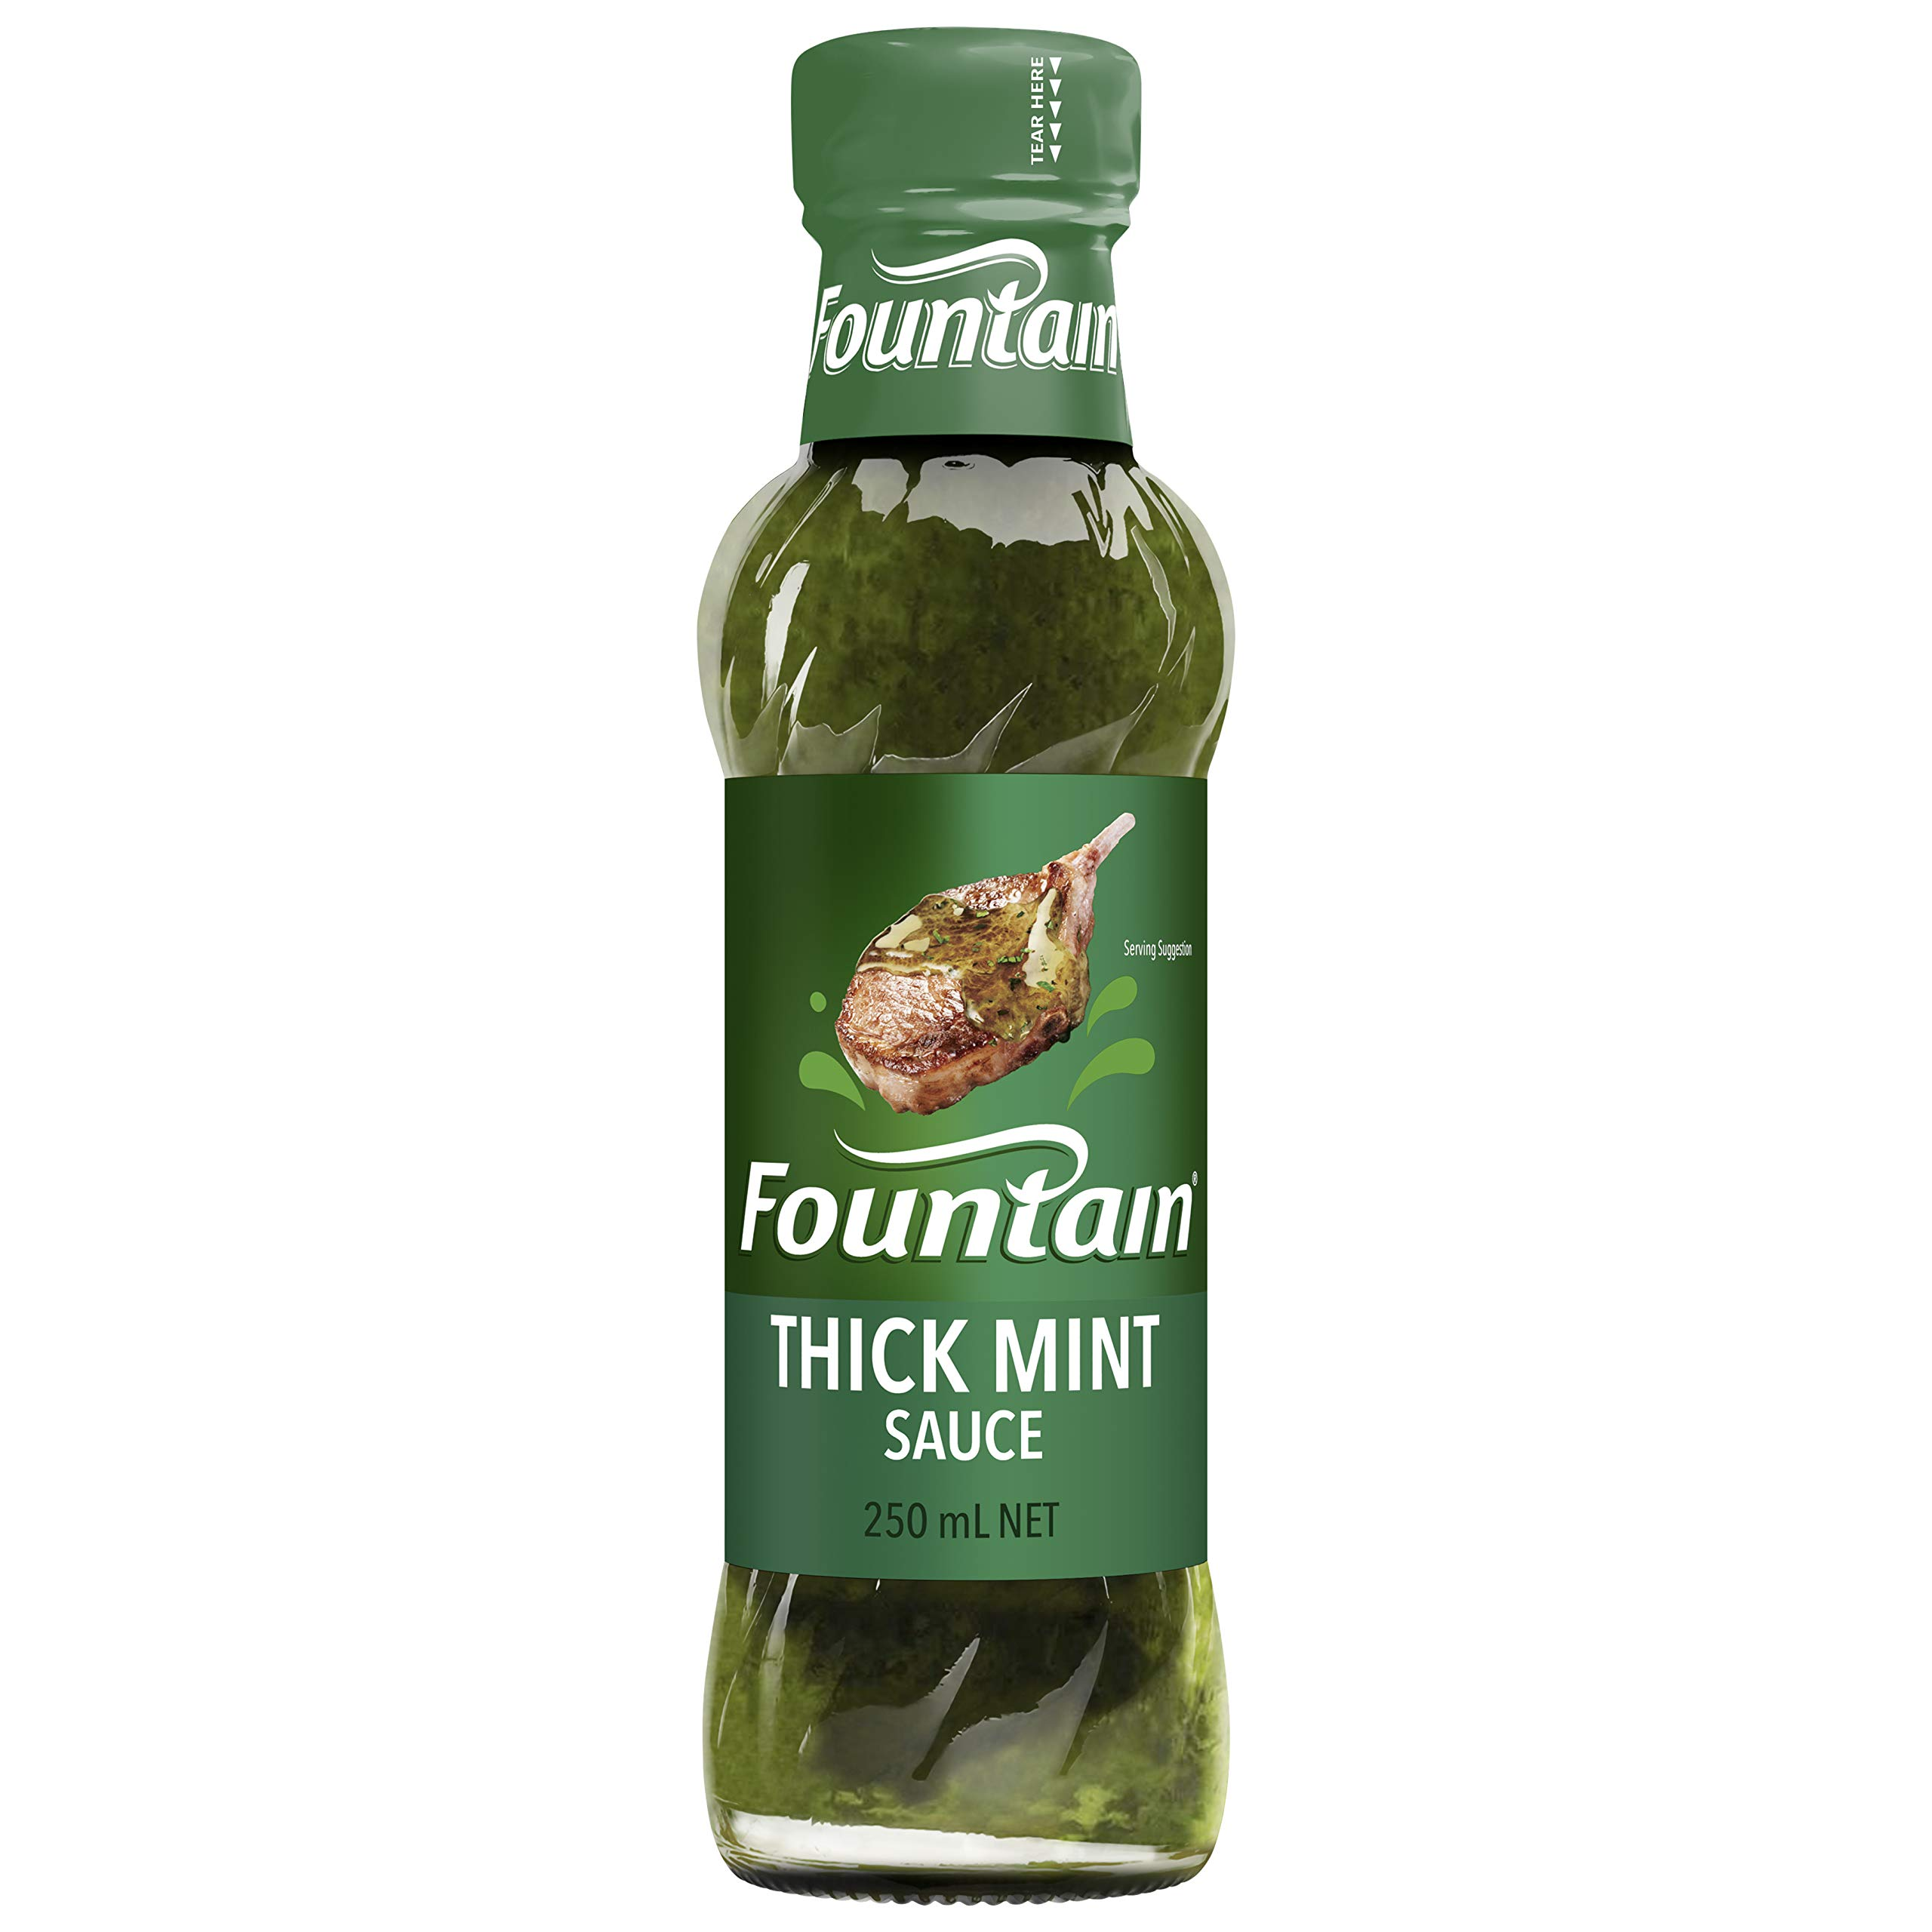 Fountain Thick Mint Sauce 250ml.